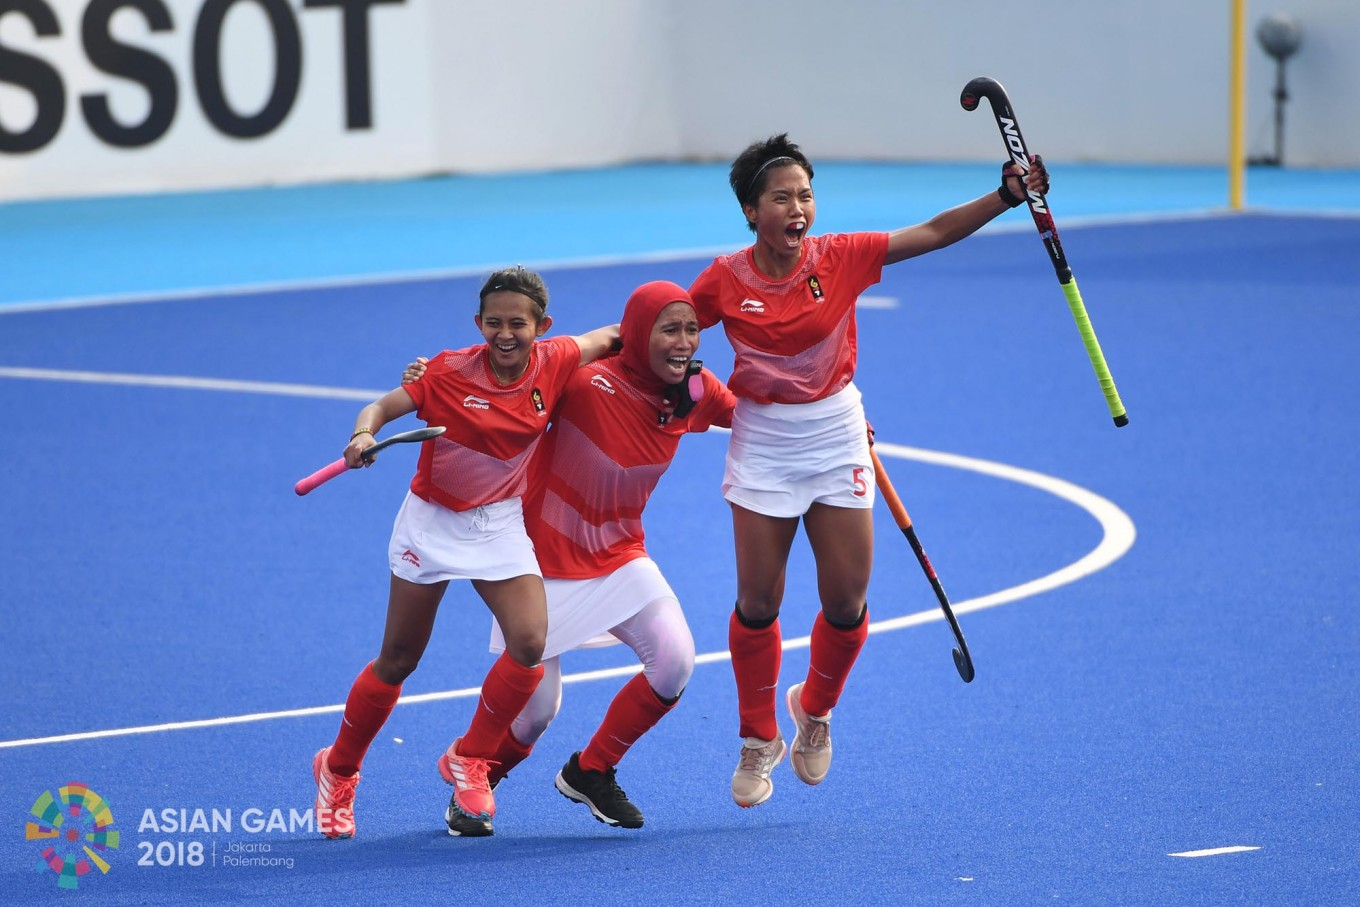 Indonesia players celebrate after a goal during the women's hockey match between Indonesia and Kazakhstan at the 2018 Asian Games in Jakarta on August.23. Inasgoc via Antara/Dhoni Setiawan